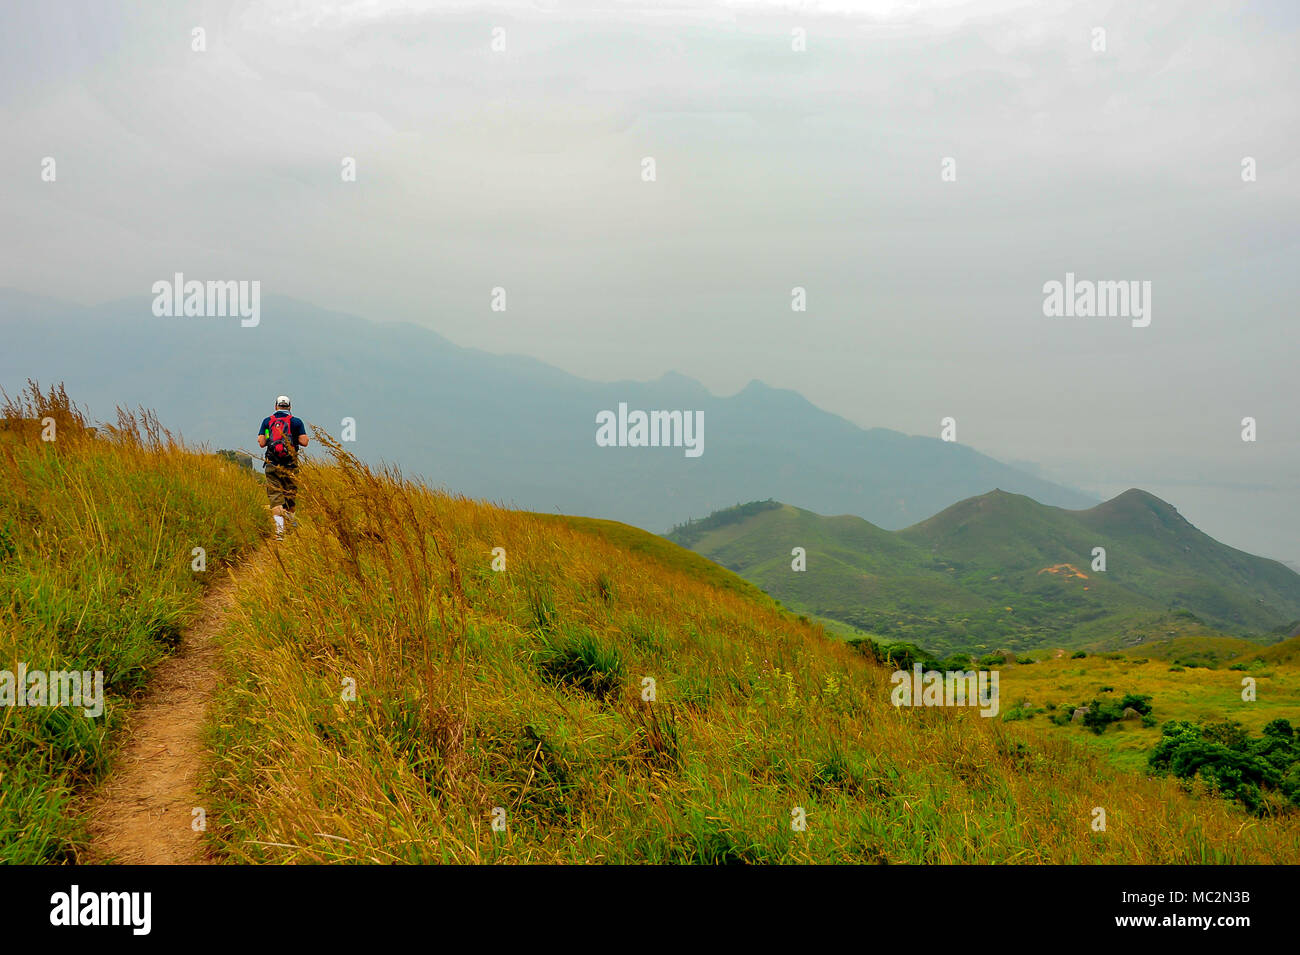 Man carrying backpack hiking on mountain trail, Silver Mine Bay, Lantau Island, Hong Kong. Panoramic views along grassy slope to distant peaks. - Stock Image